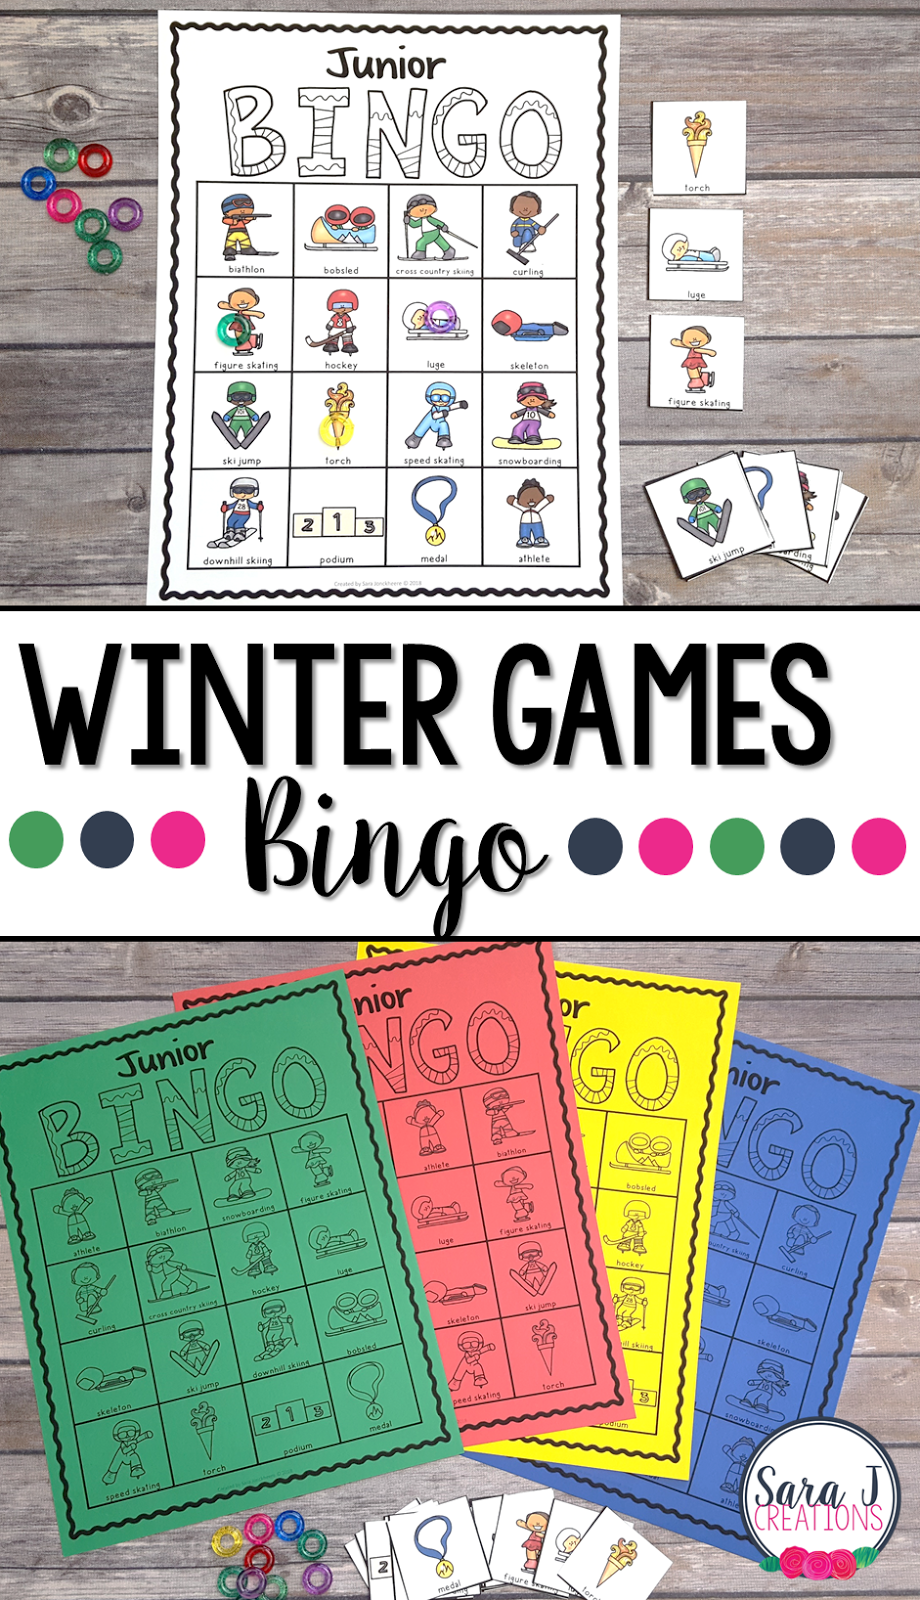 Get your students excited to watch the Winter Games with this fun bingo game. Great way for kids to learn vocabulary of the different sports played at the Winter Games. #wintergames #bingo #games #sarajcreations